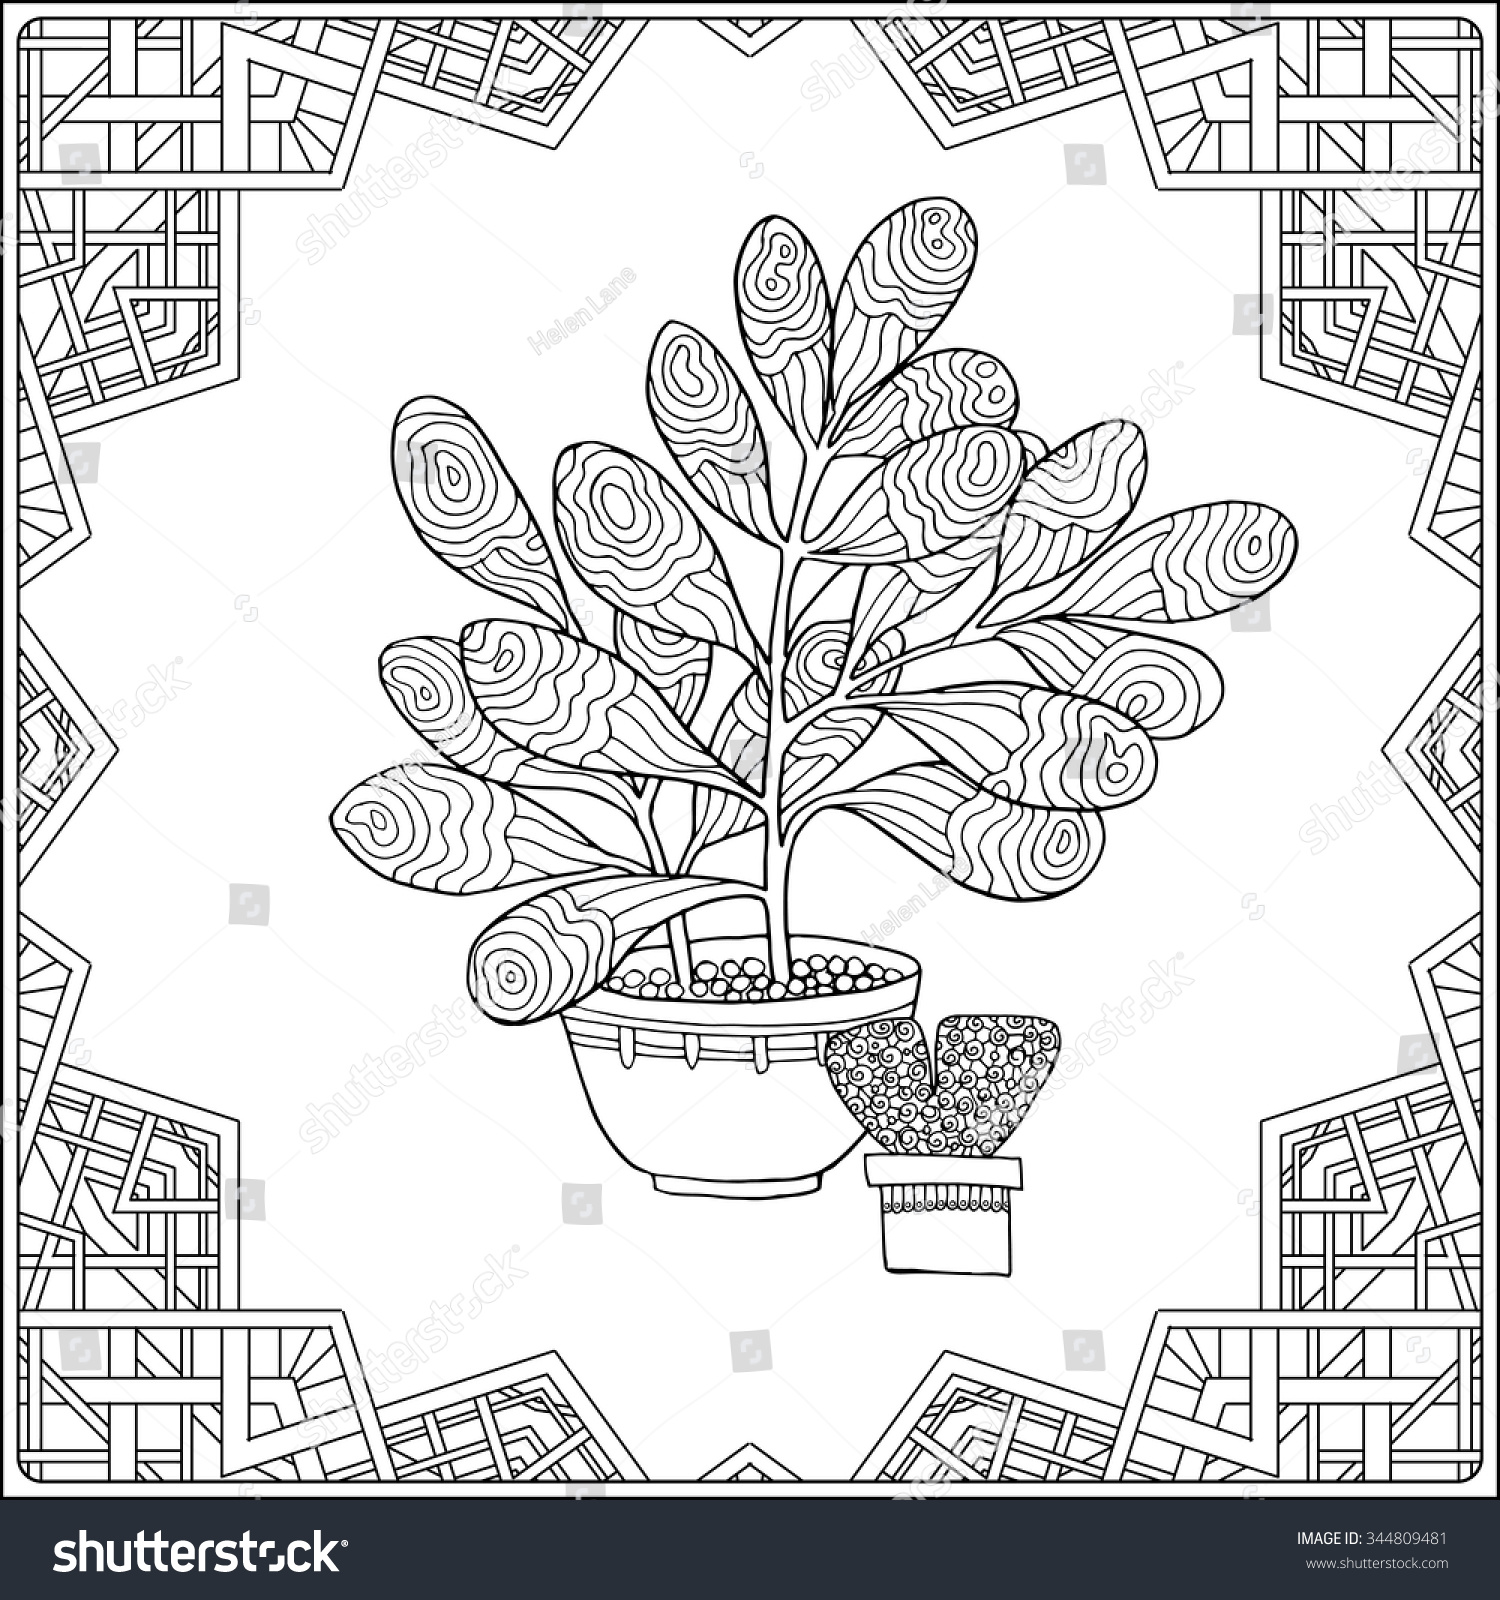 coloring book older children coloring stock vector 344809481